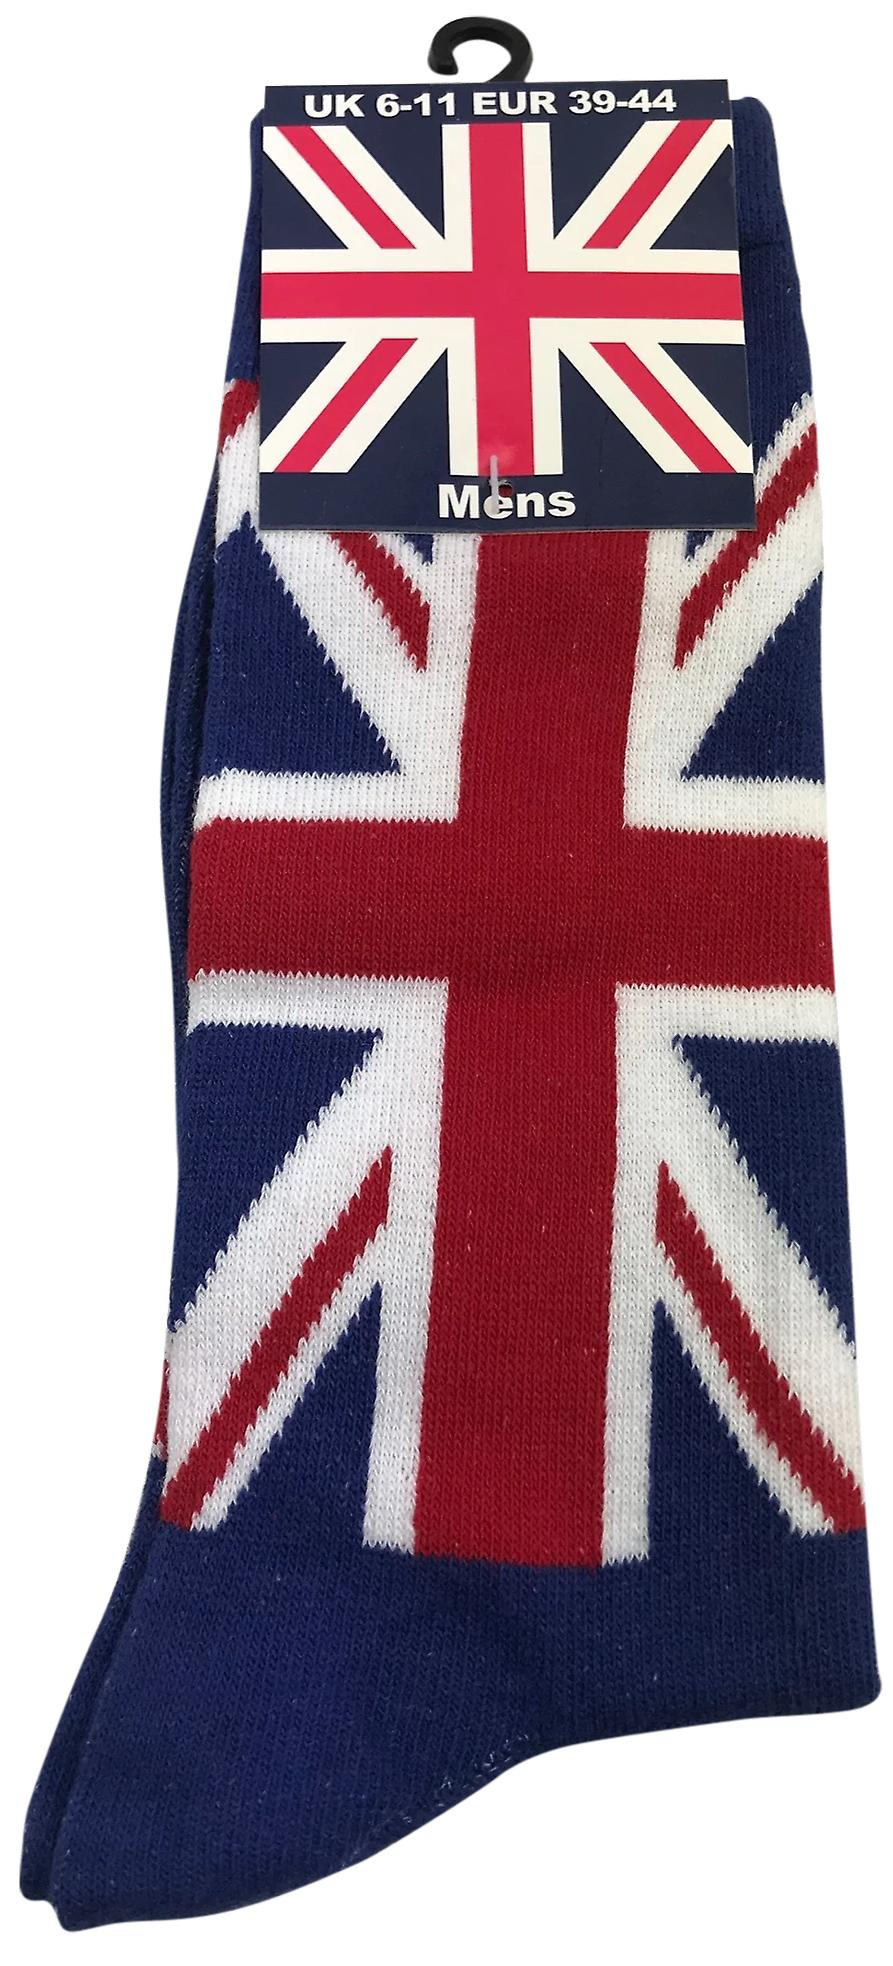 Ladies union jack sock navy size 4-7 (uk)